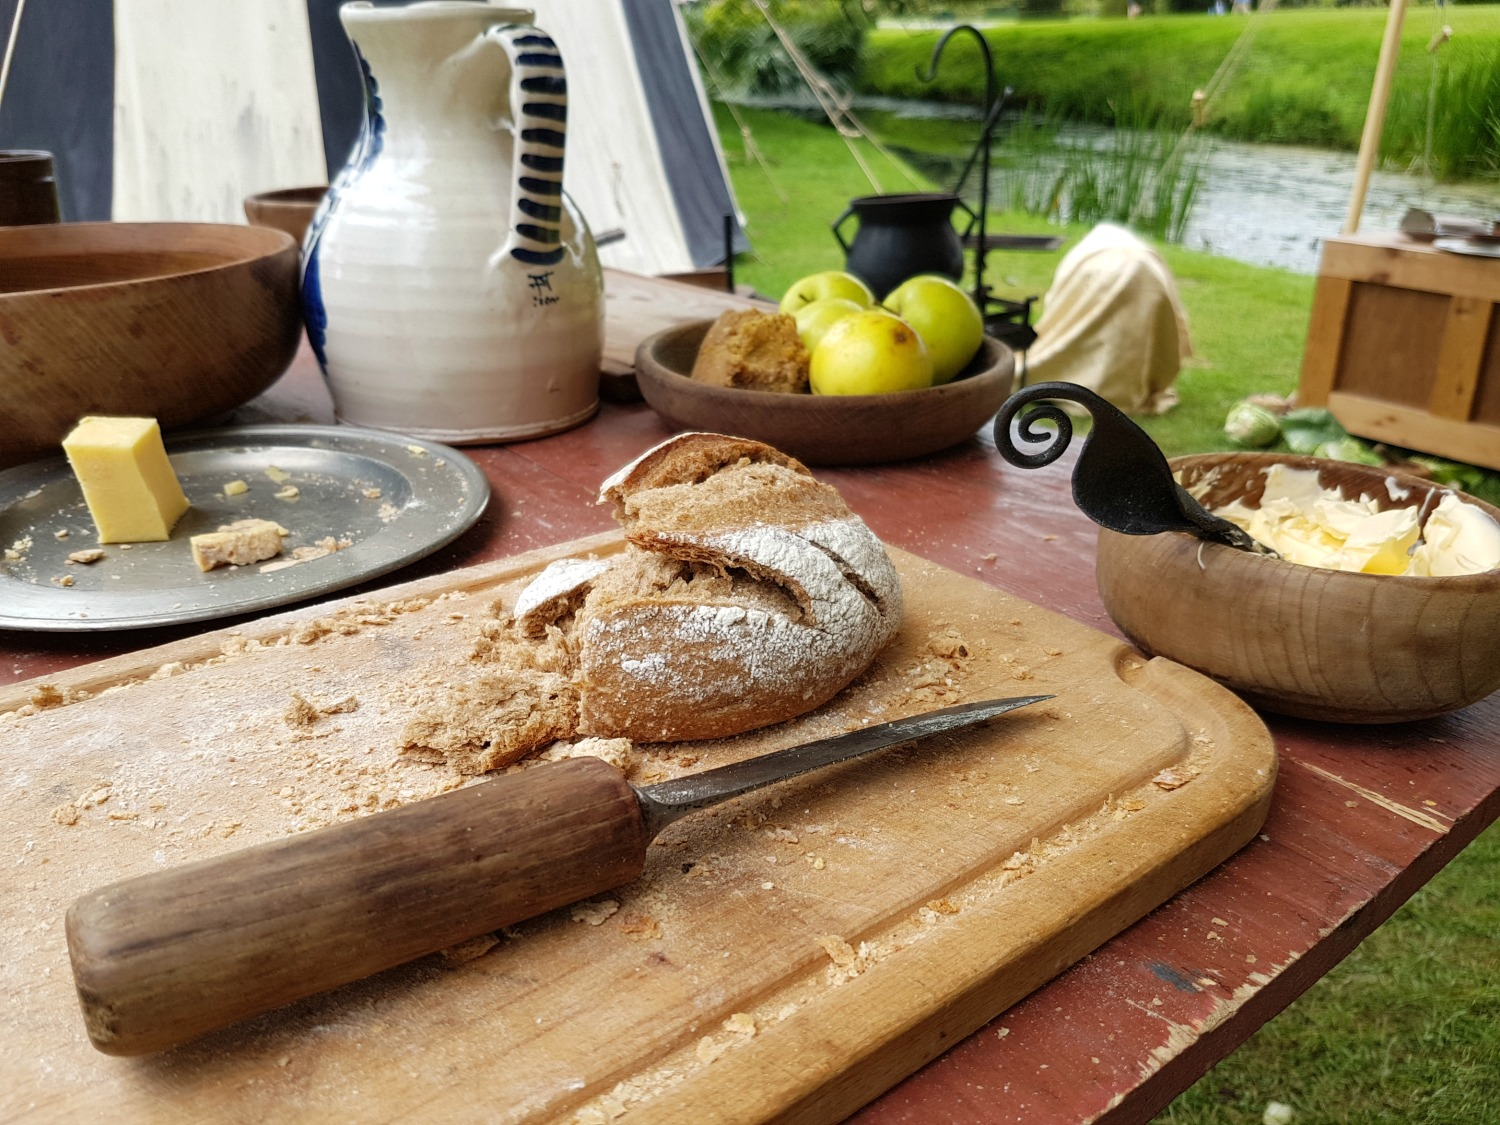 Food from a Tudor kitchen at Hever Castle, Kent - our family day out at Hever Castle with kids